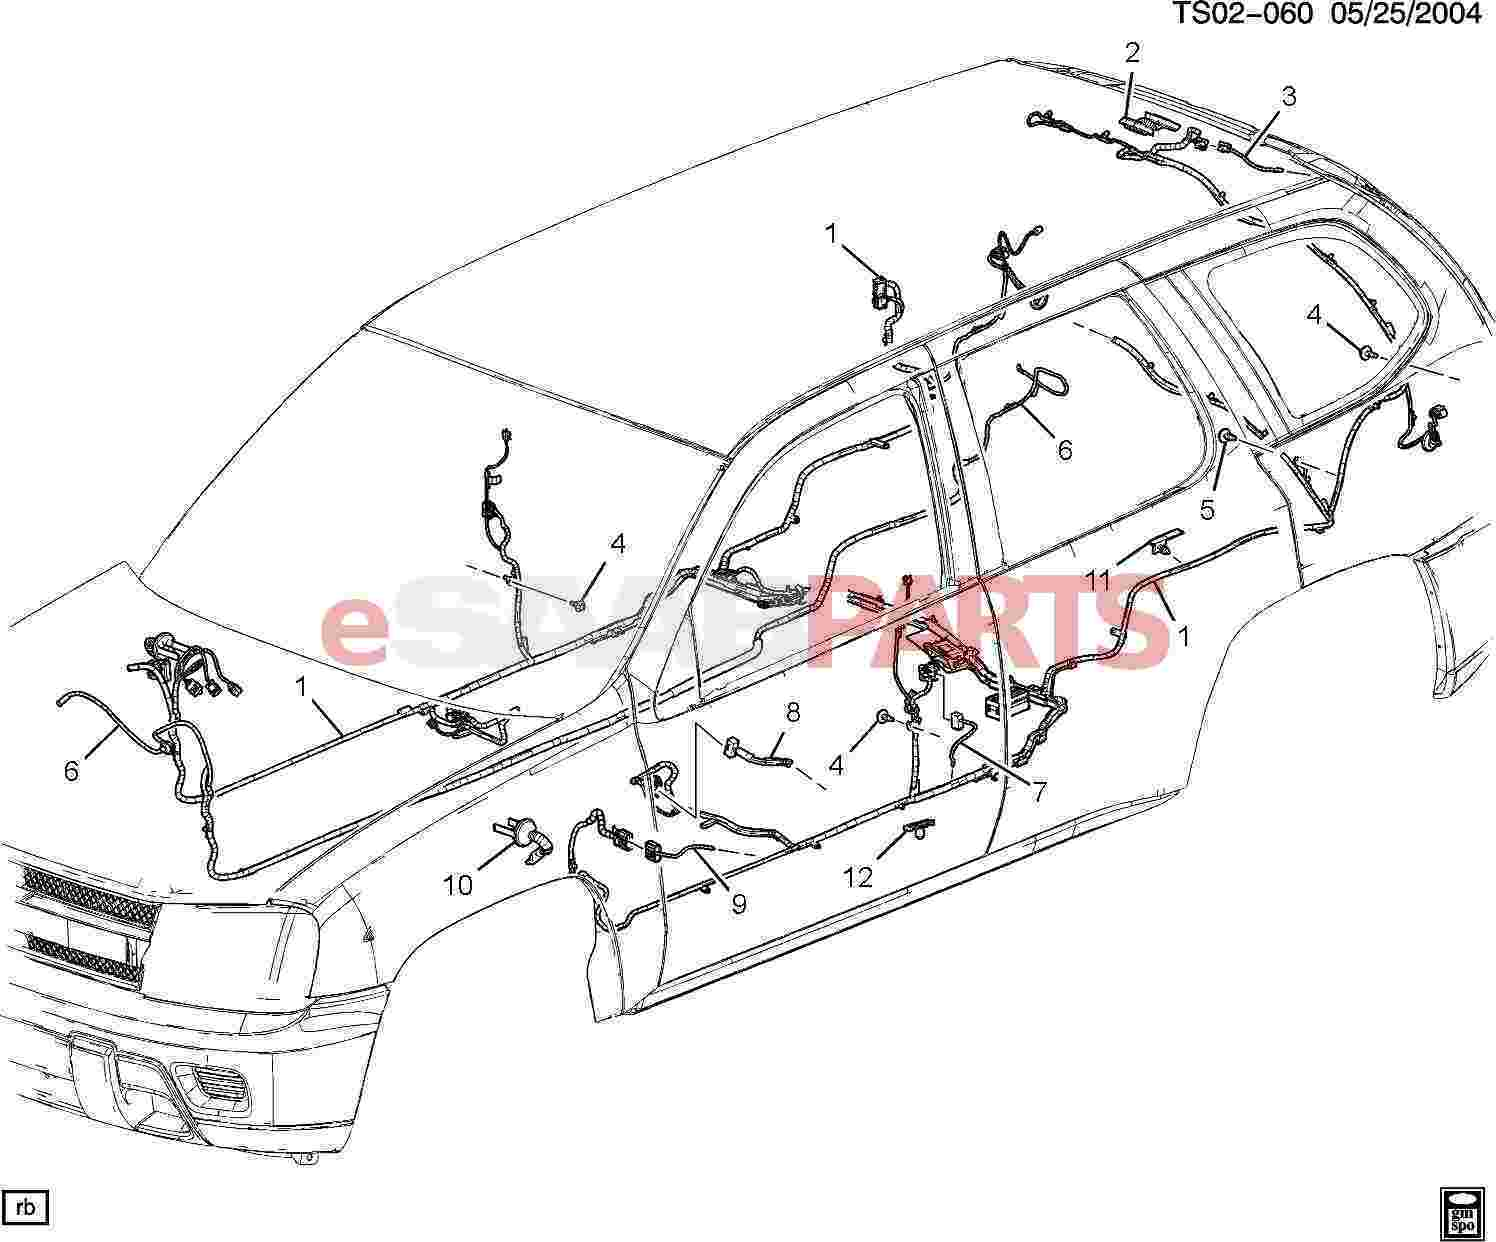 2008 saab 9 3 wiring diagram how to read diagrams schematics automotive stereo imageresizertool com